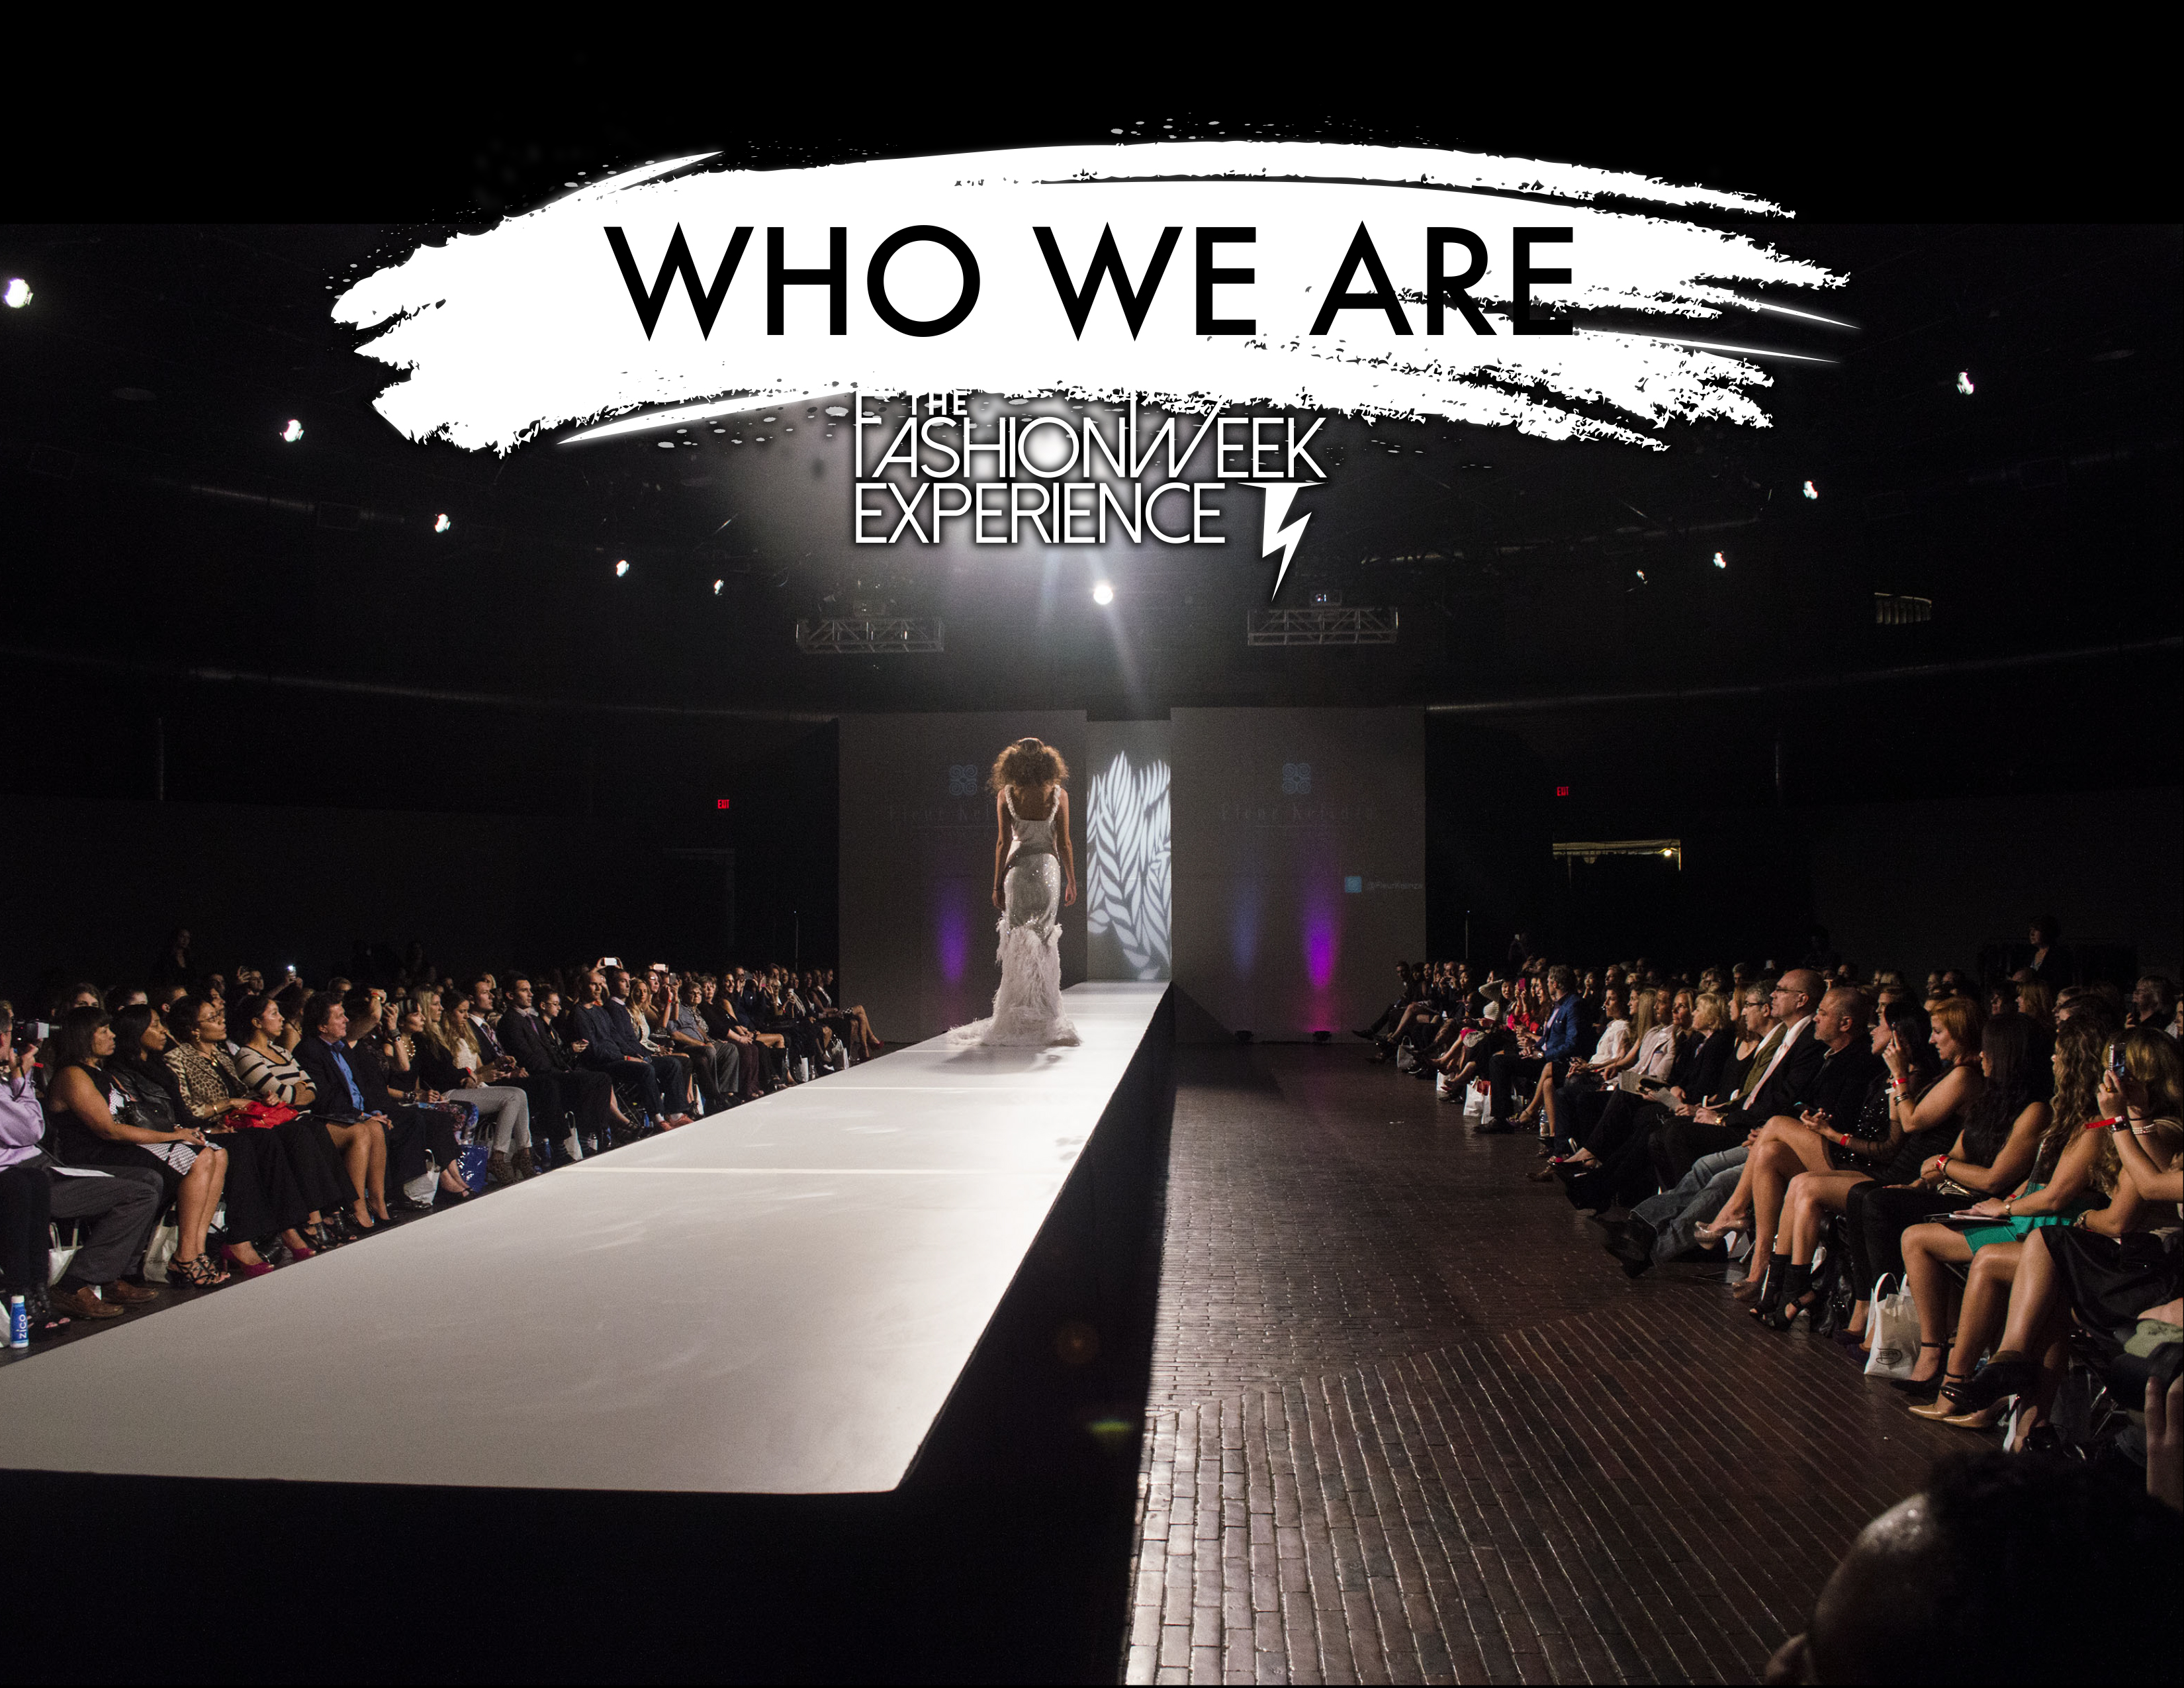 Fashion-Week-Experience-pages_words2-2